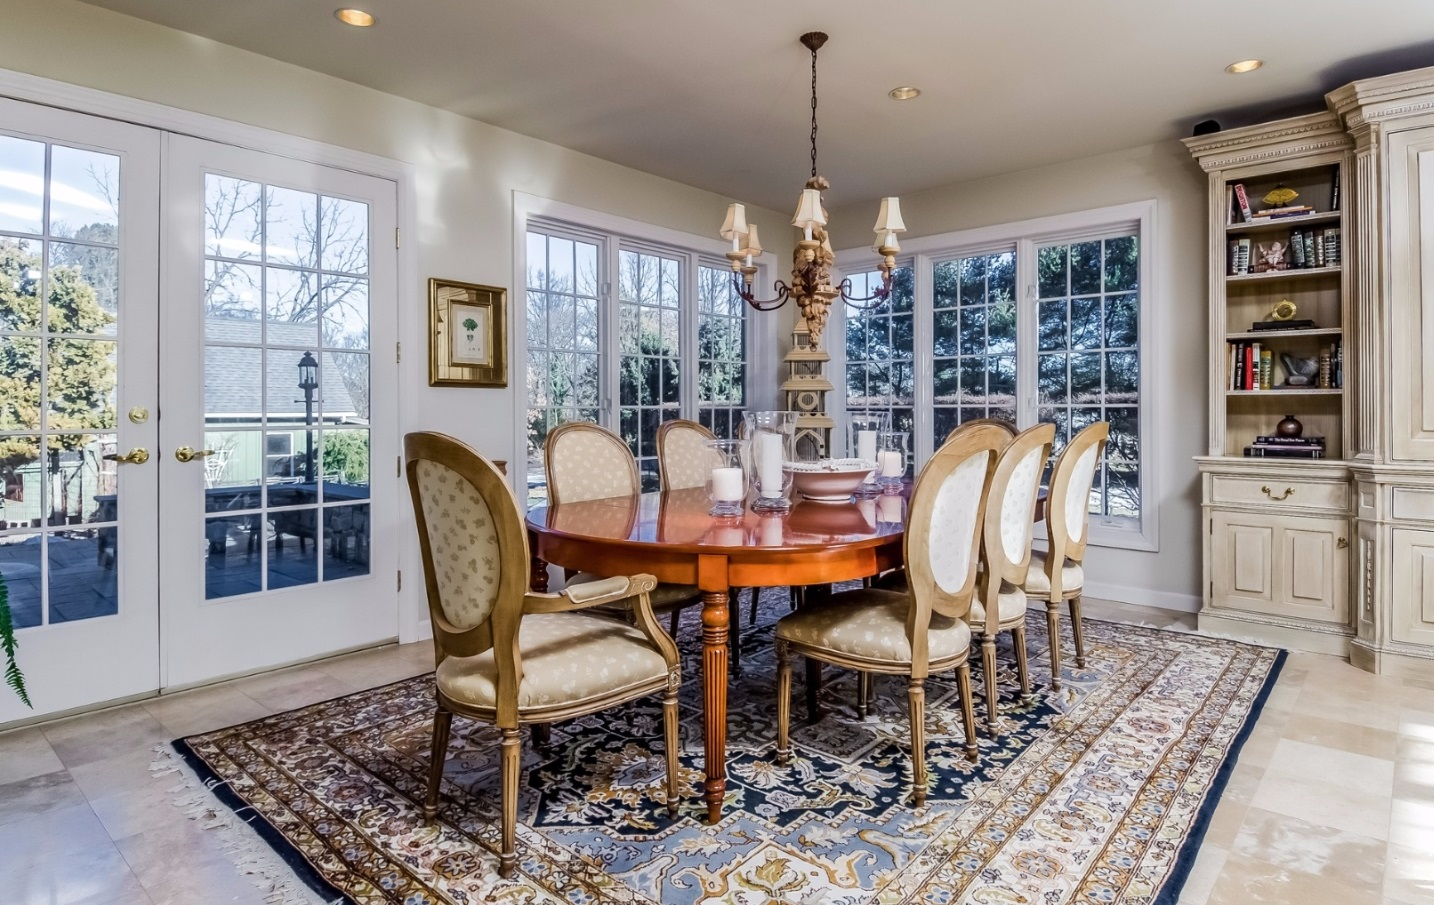 Ideal Bucks County Dinner Party Setting Steve Walny REALTOR®